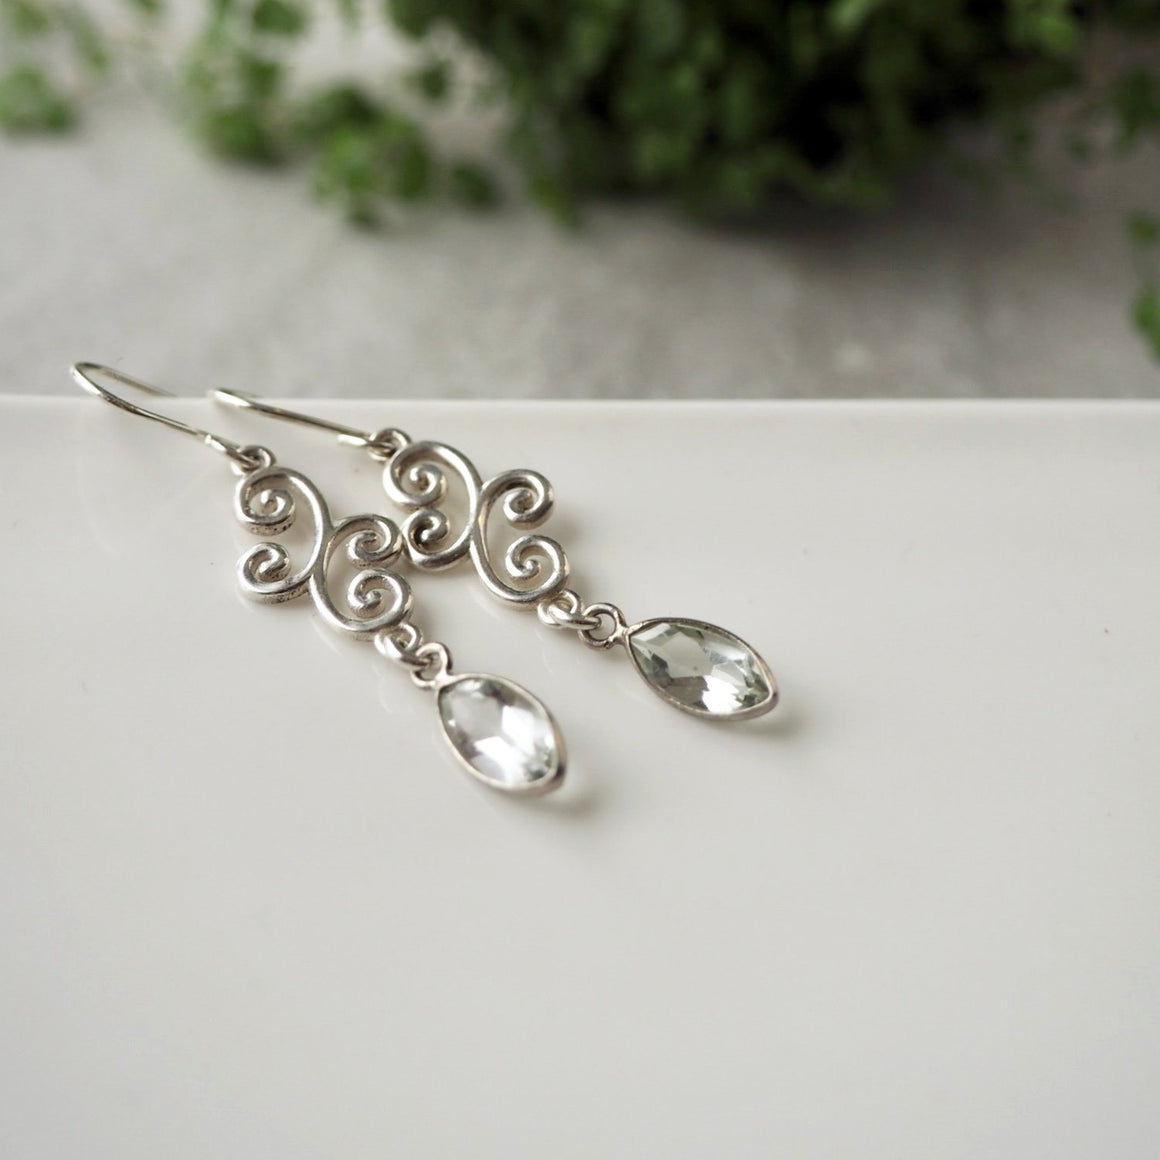 Green Amethyst Sterling silver earrings by Nancy Wallis Designs